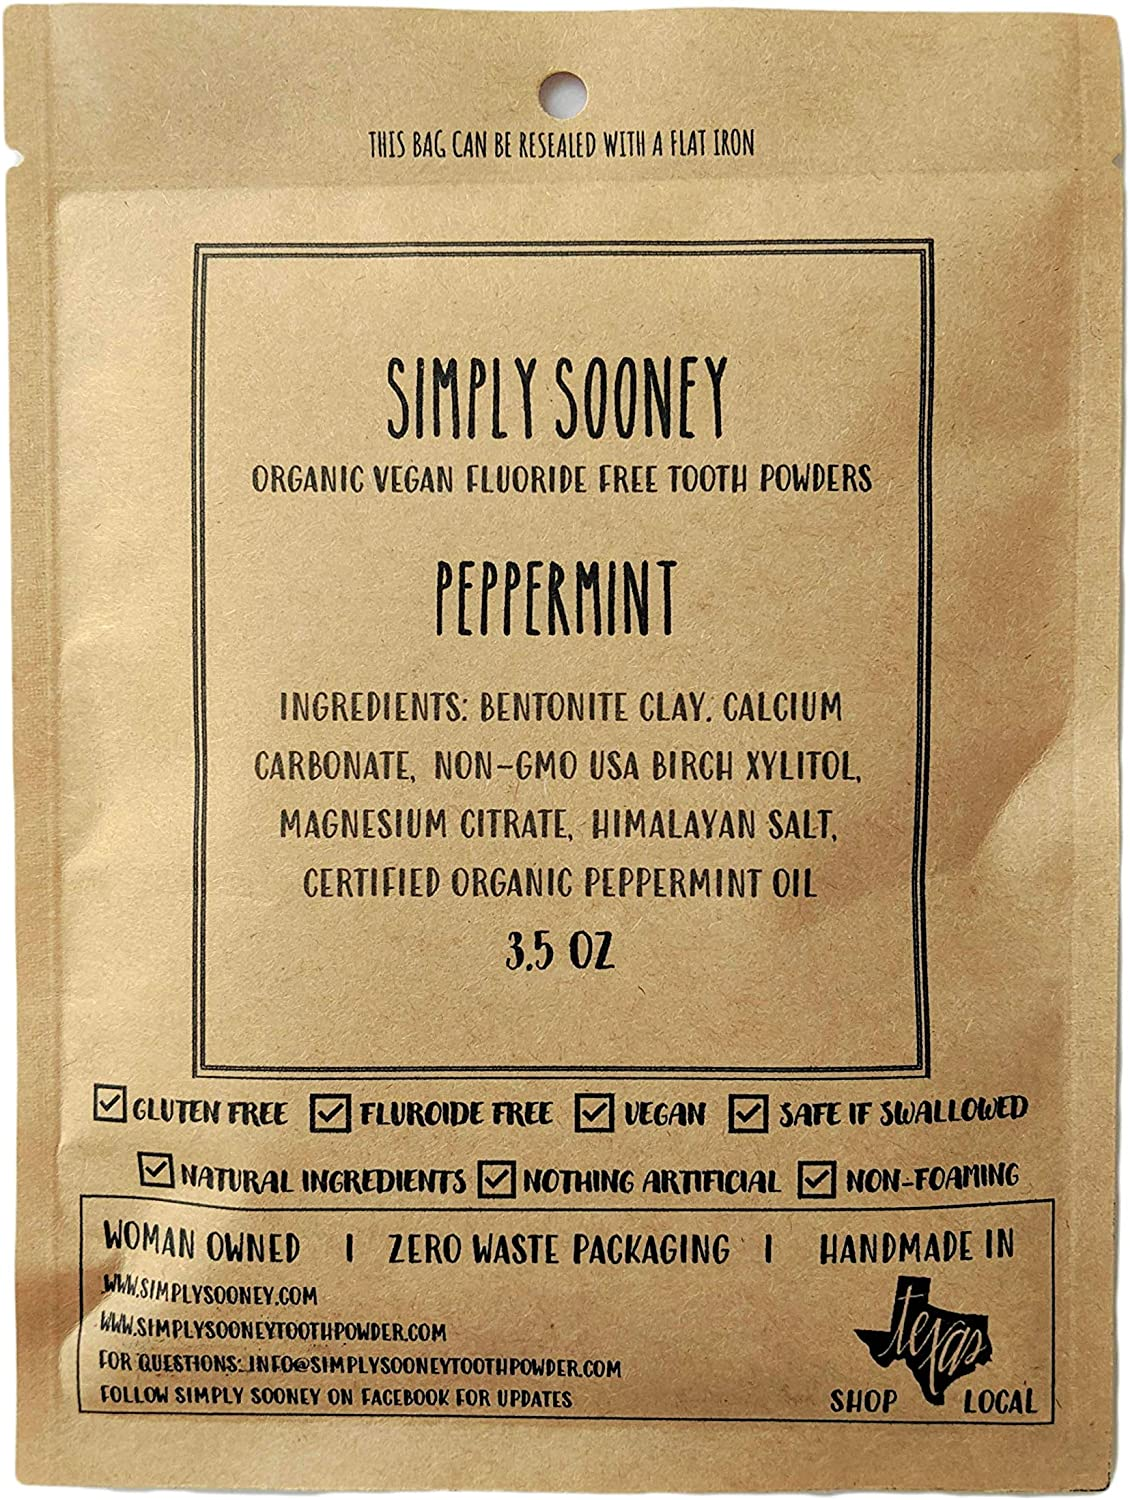 Simply Sooney Peppermint Tooth powder